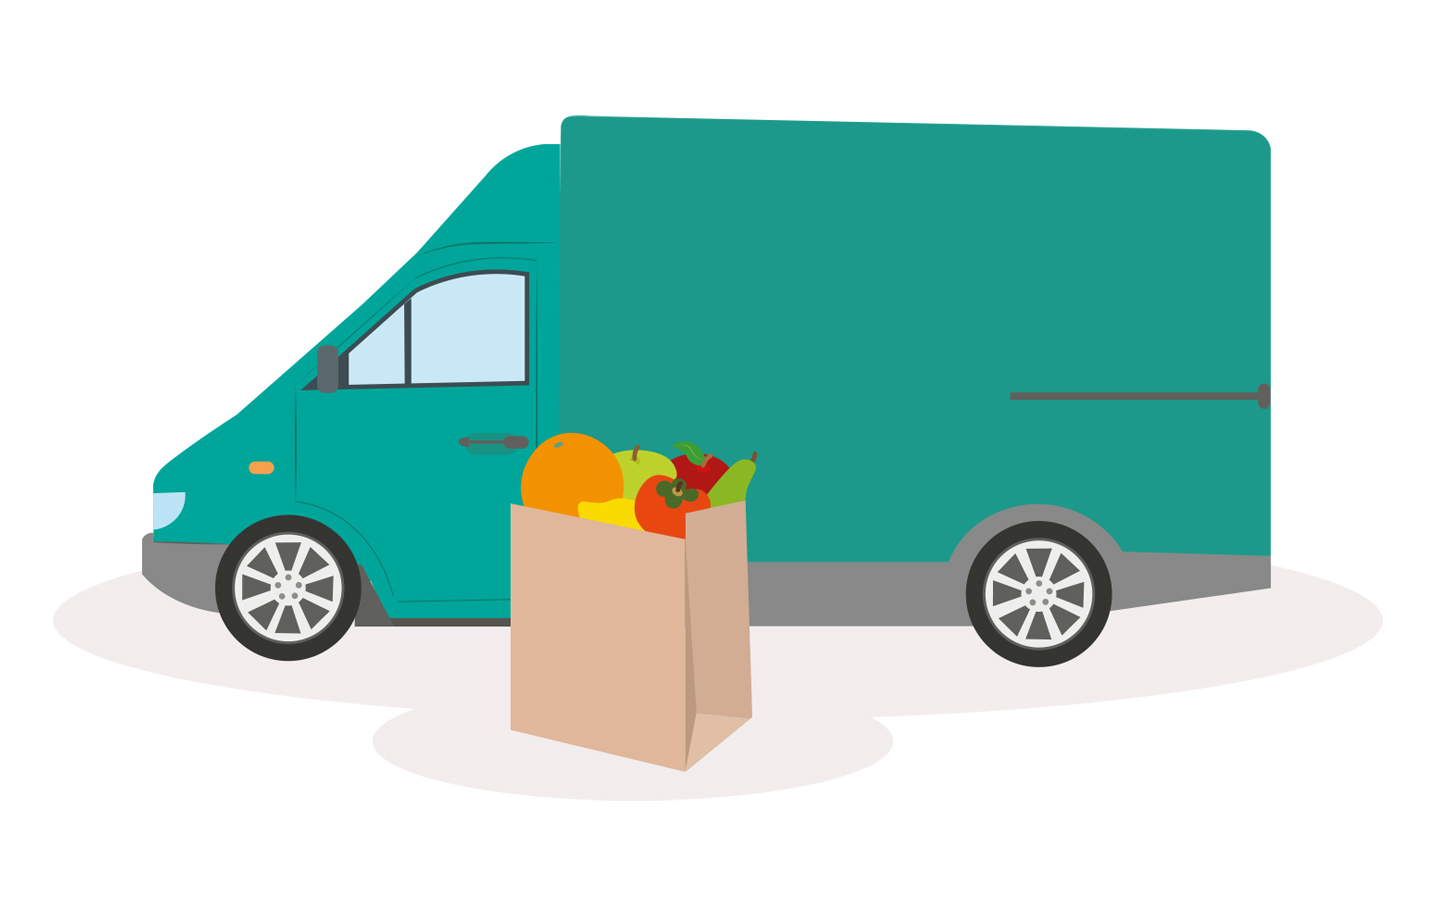 food delivery illustration for helpful helplines article